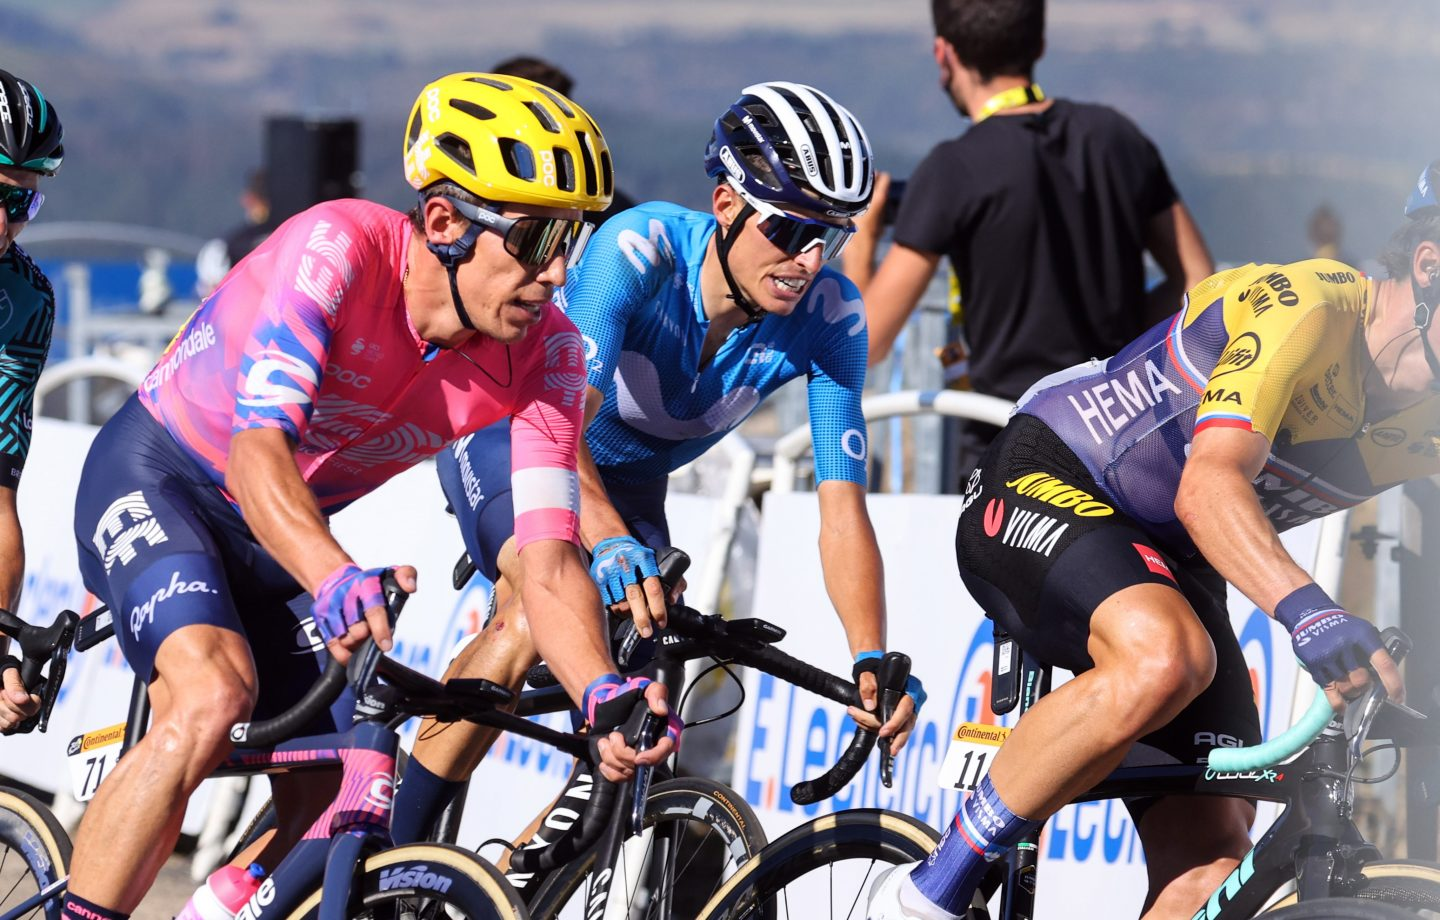 Imagen de la noticia 'Valverde, Mas, Soler inside GC group atop Mont Aigoual'